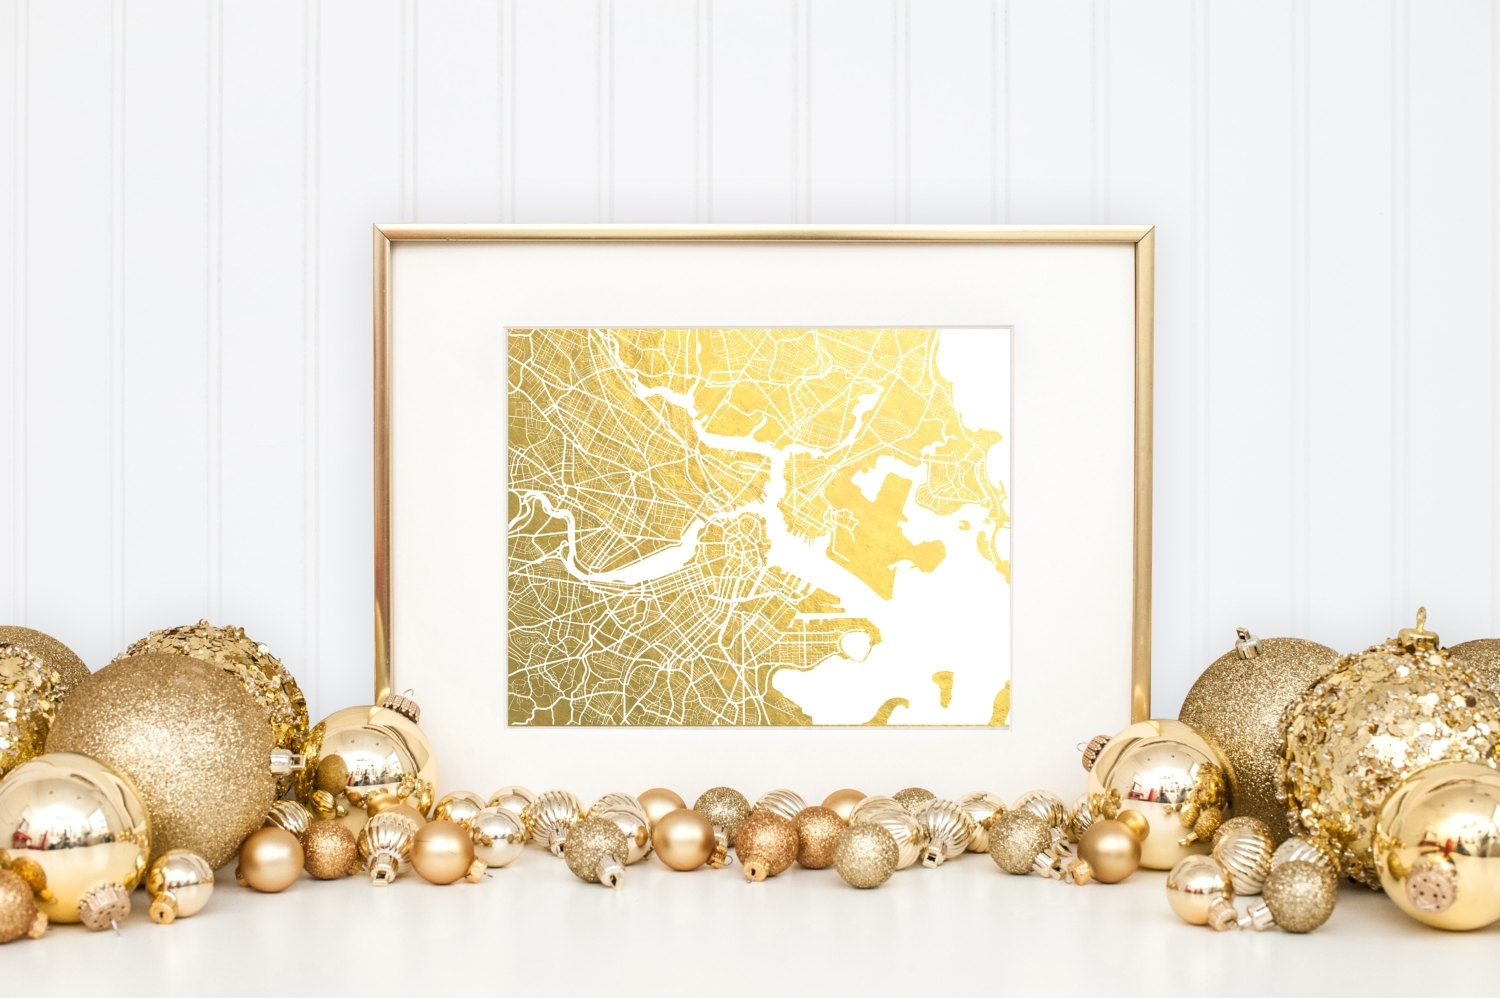 Boston Map Gold Foil Print Boston Wall Art Gold Foil Map, Gold Wall For Recent Gold Foil Wall Art (View 1 of 20)